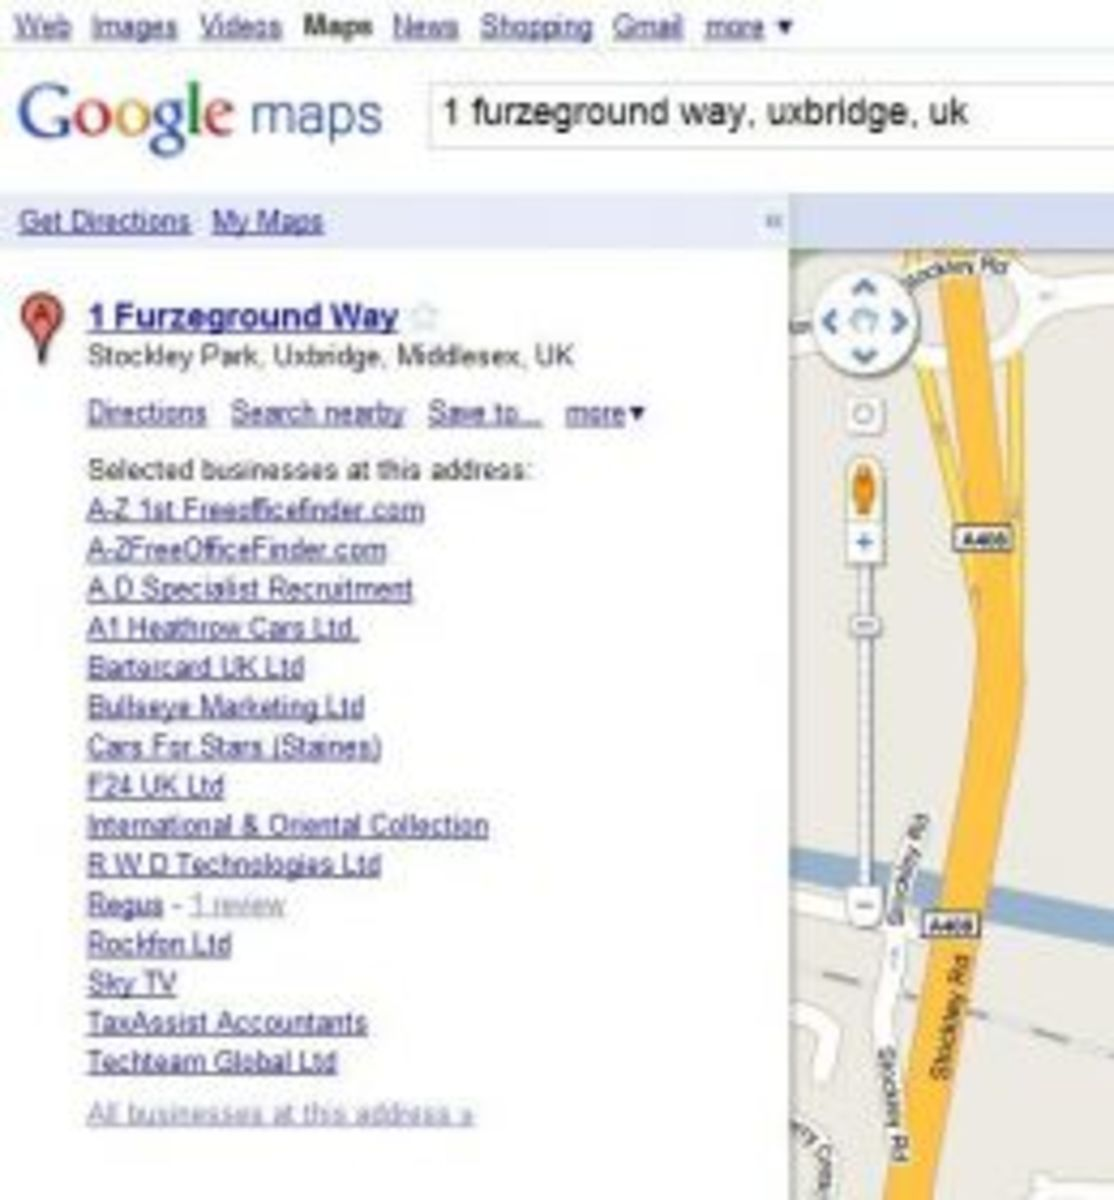 How many businesses share the same address as TVI Express in Uxbridge? See for yourself.